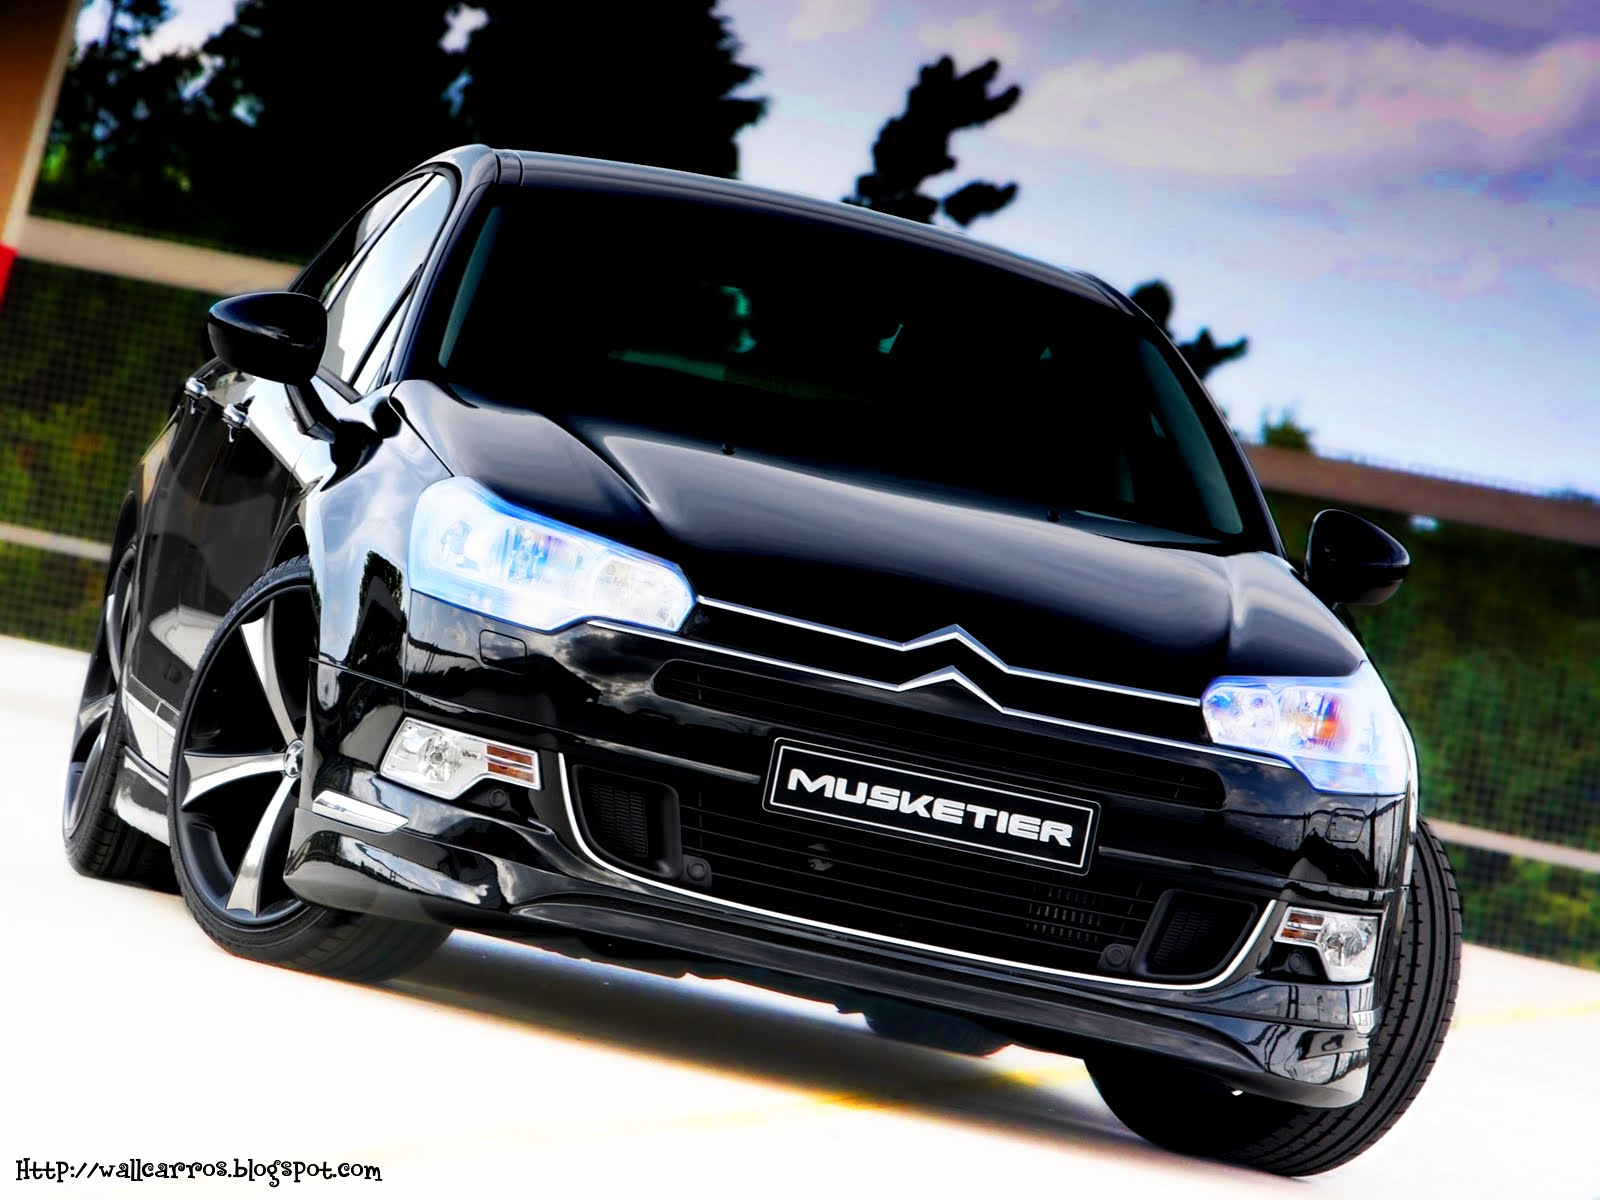 Citroen C5 Tuning Musketier moreover 1993 Jeep Cherokee Overview C2423 additionally 2009 Toyota Verso besides  also Bellagio Room Service Menu. on older grand cherokee